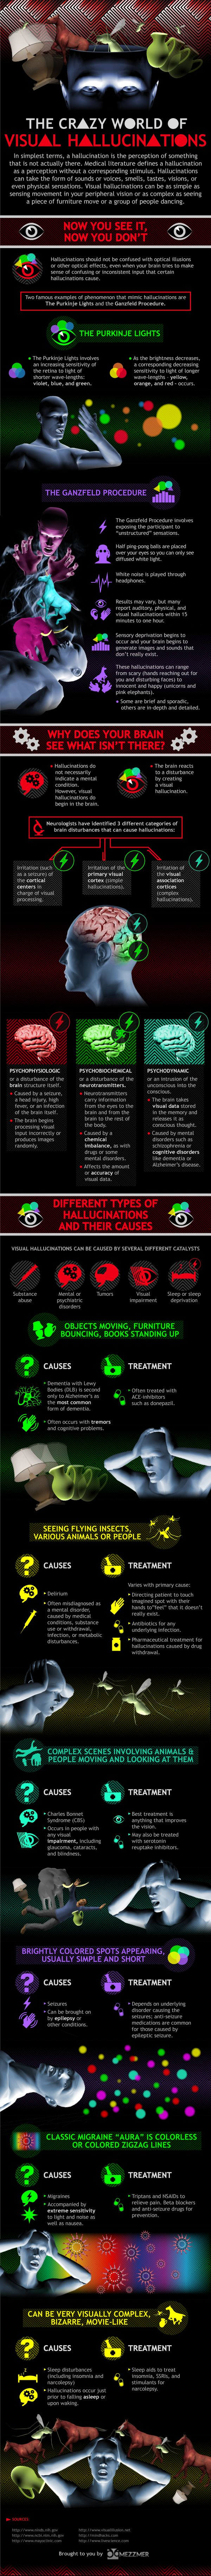 Here's a pretty cool infographic on hallucinations for ya'll. We're not just talking hallucinations due to drugs rather what happens when our mind's play tricks on us. Enjoy today's infographic, it's pretty damn cool.